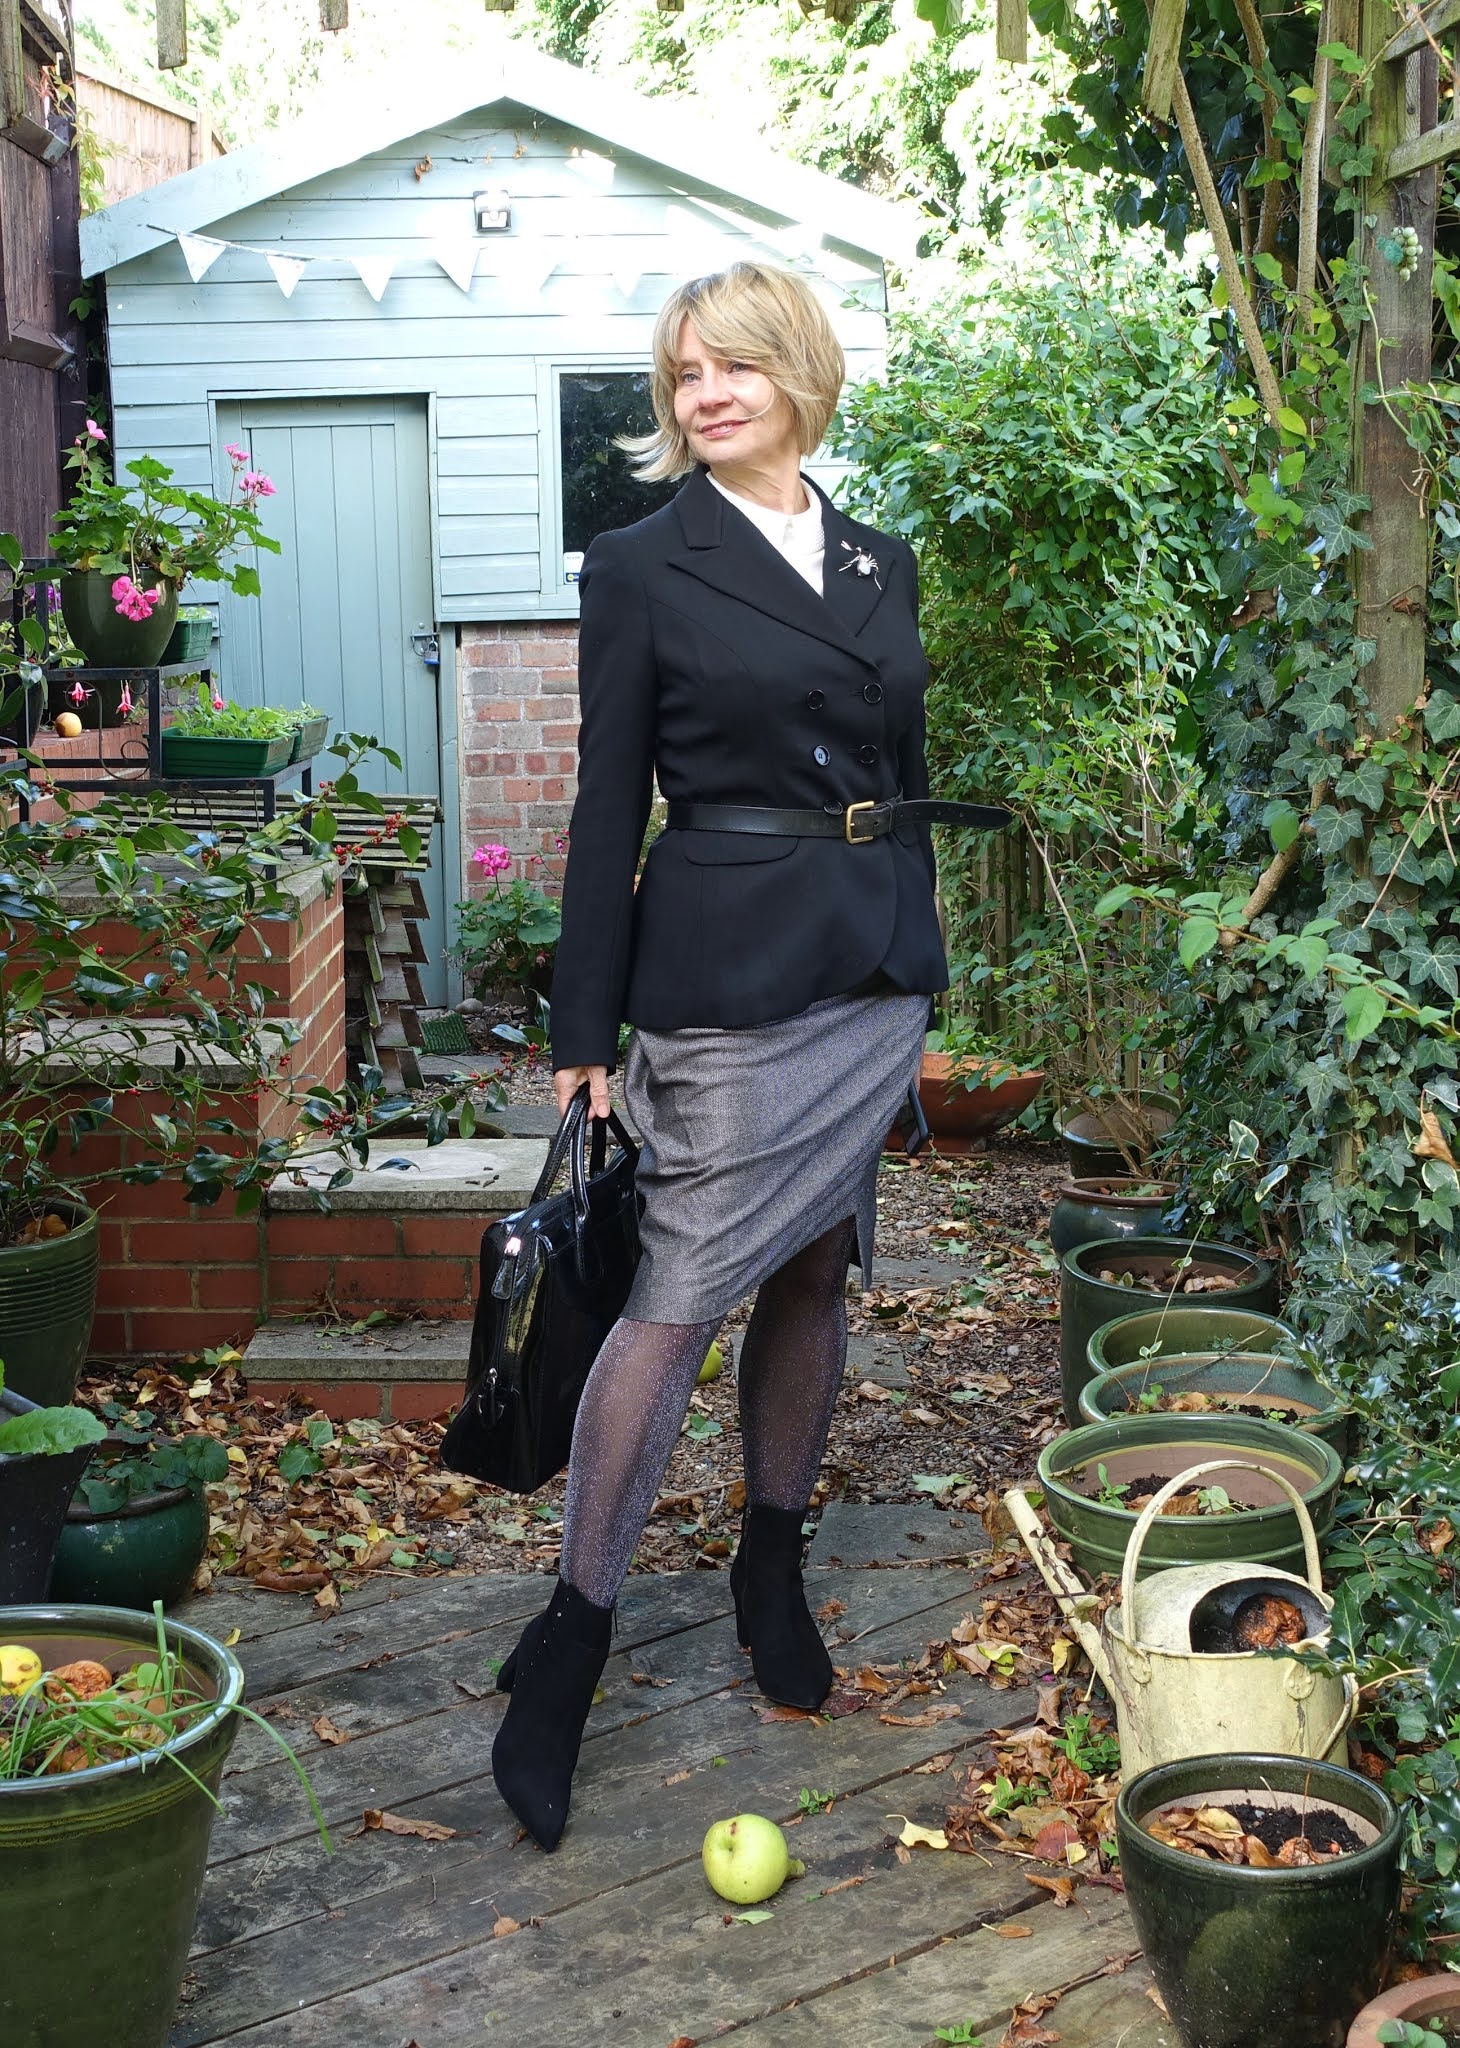 Is This Mutton's Gail Hanlon in office chic: what she used to wear to meet the ad agency. Max Mara jacket, Vivienne Westward skirt, black boots and cream pearl collar top